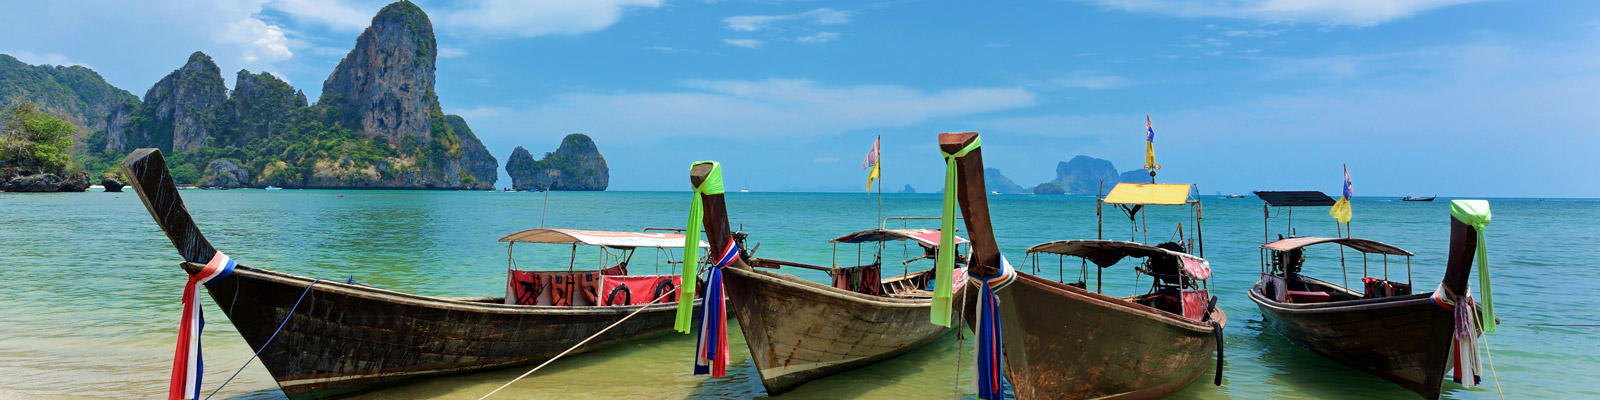 long boats in thailand